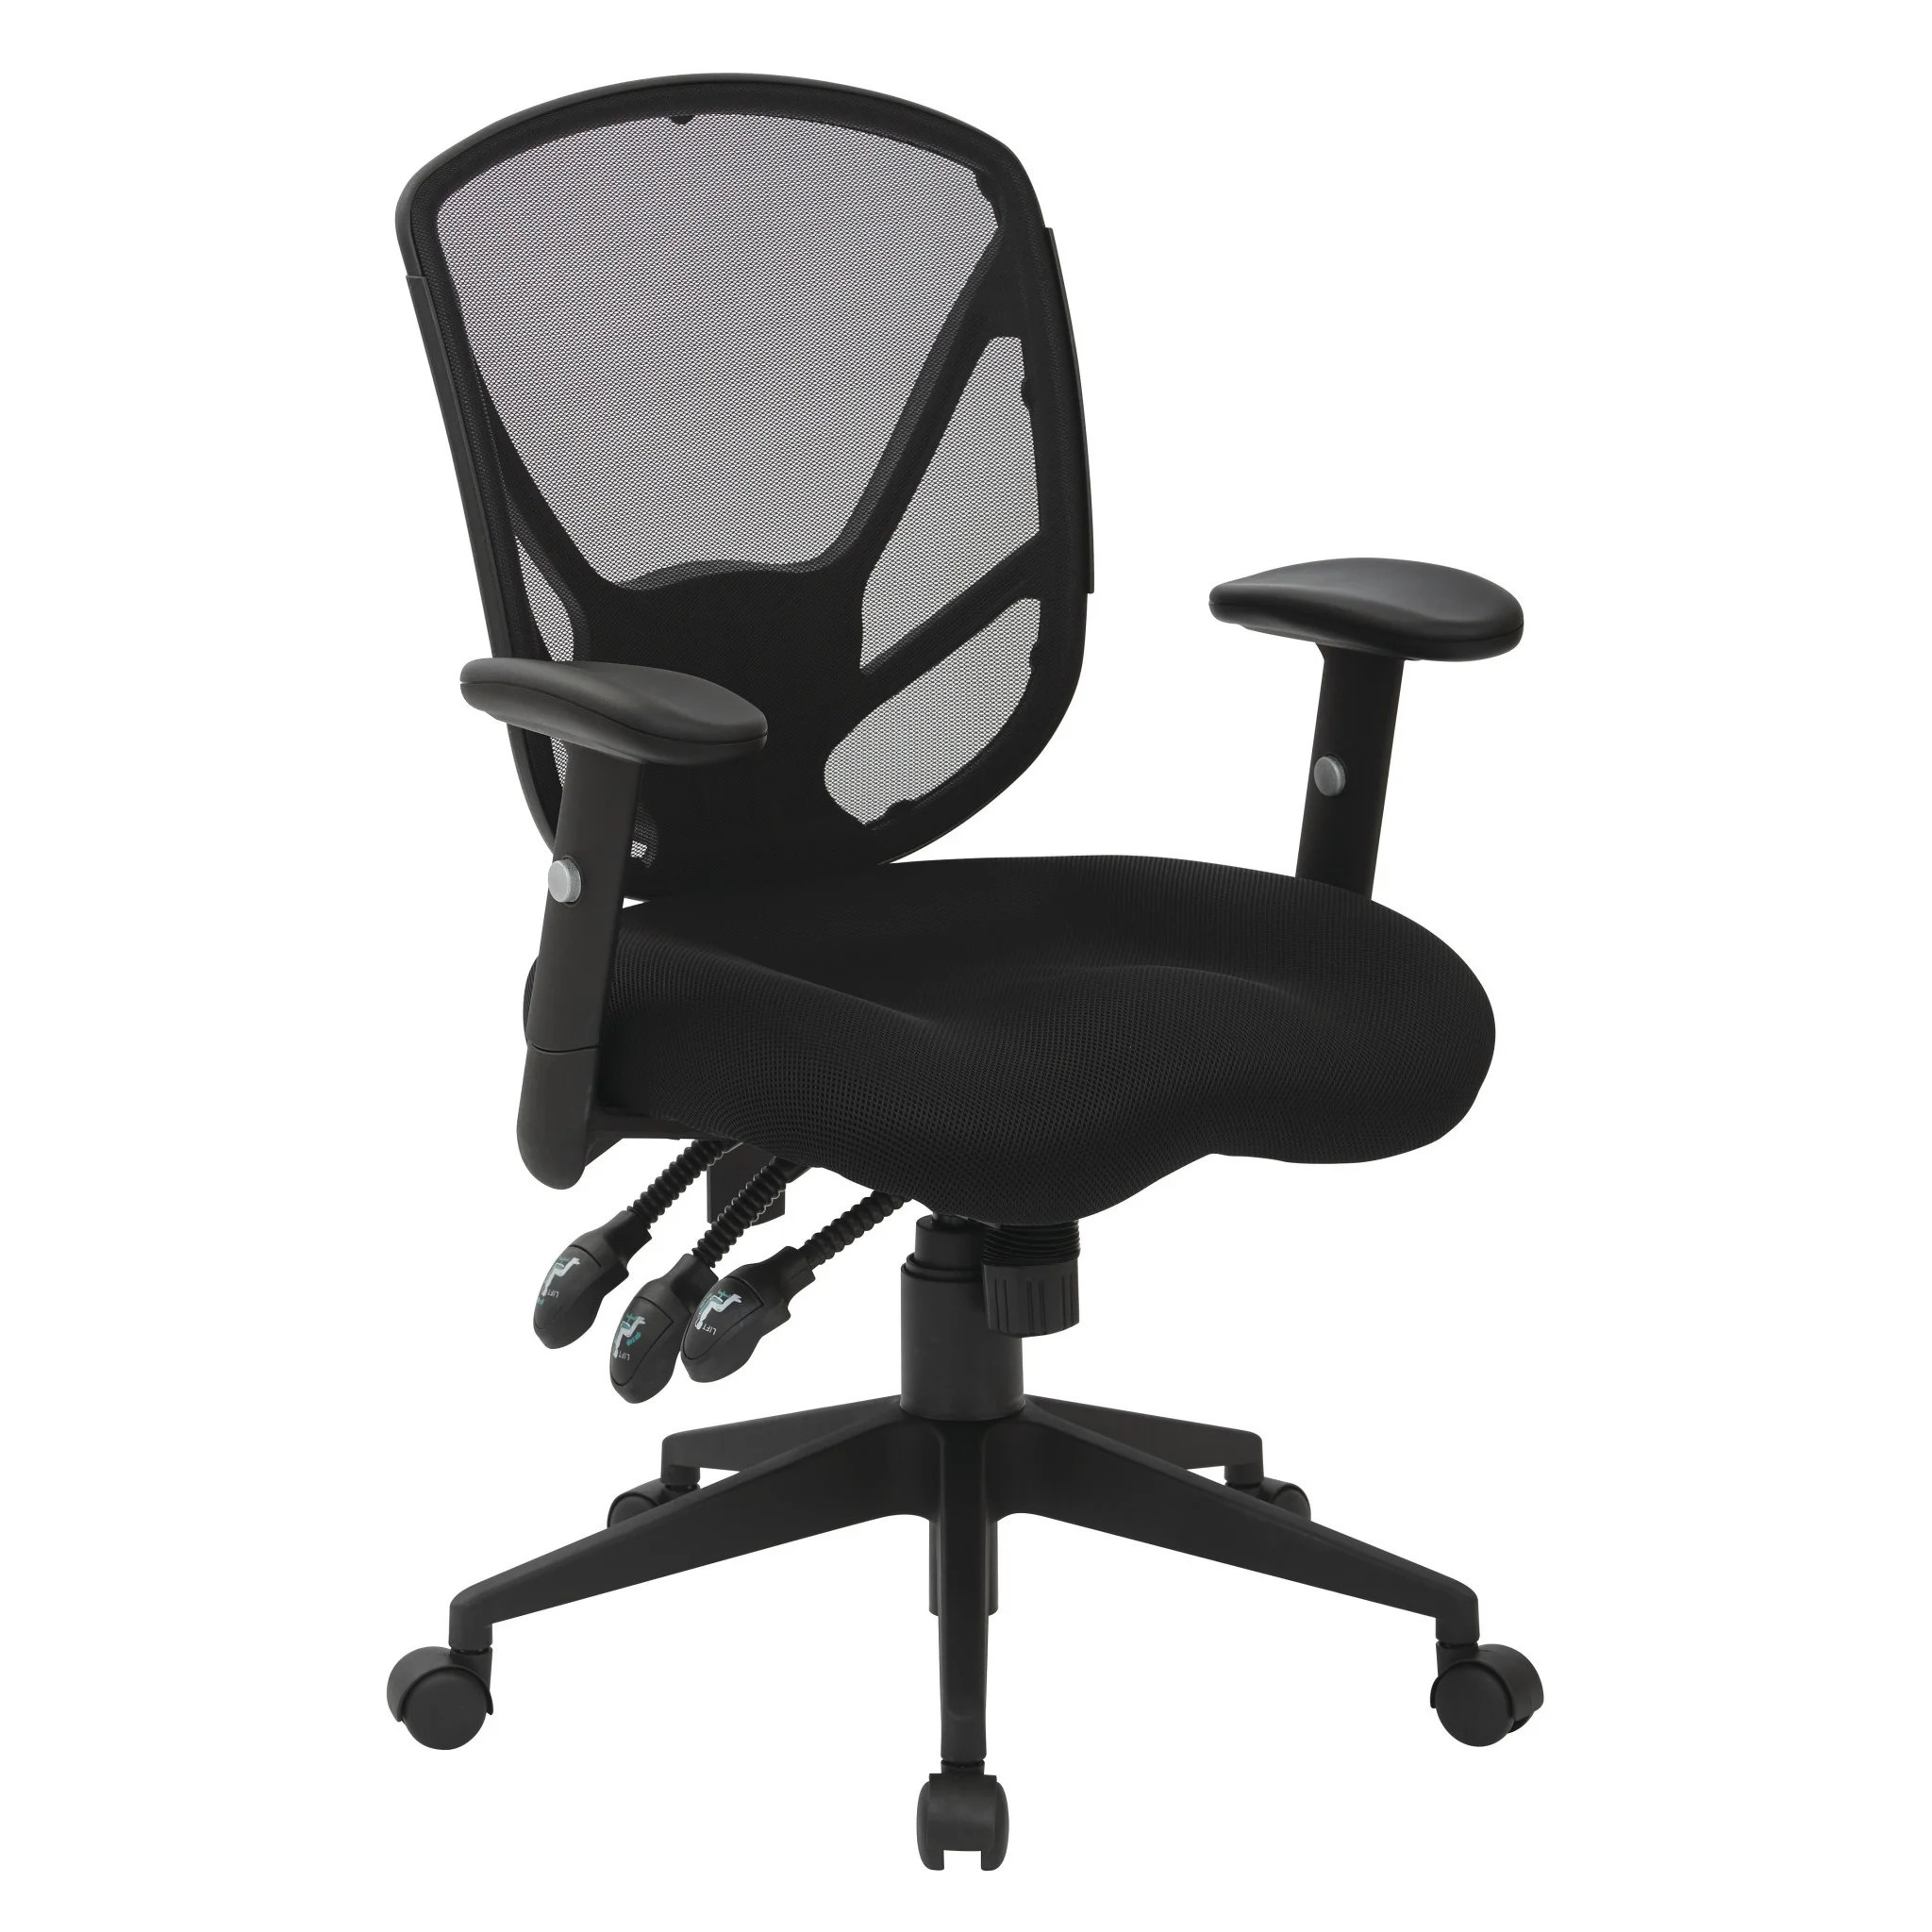 Saddle Office Chair Office Star Black Office Chair With Saddle Seat Design